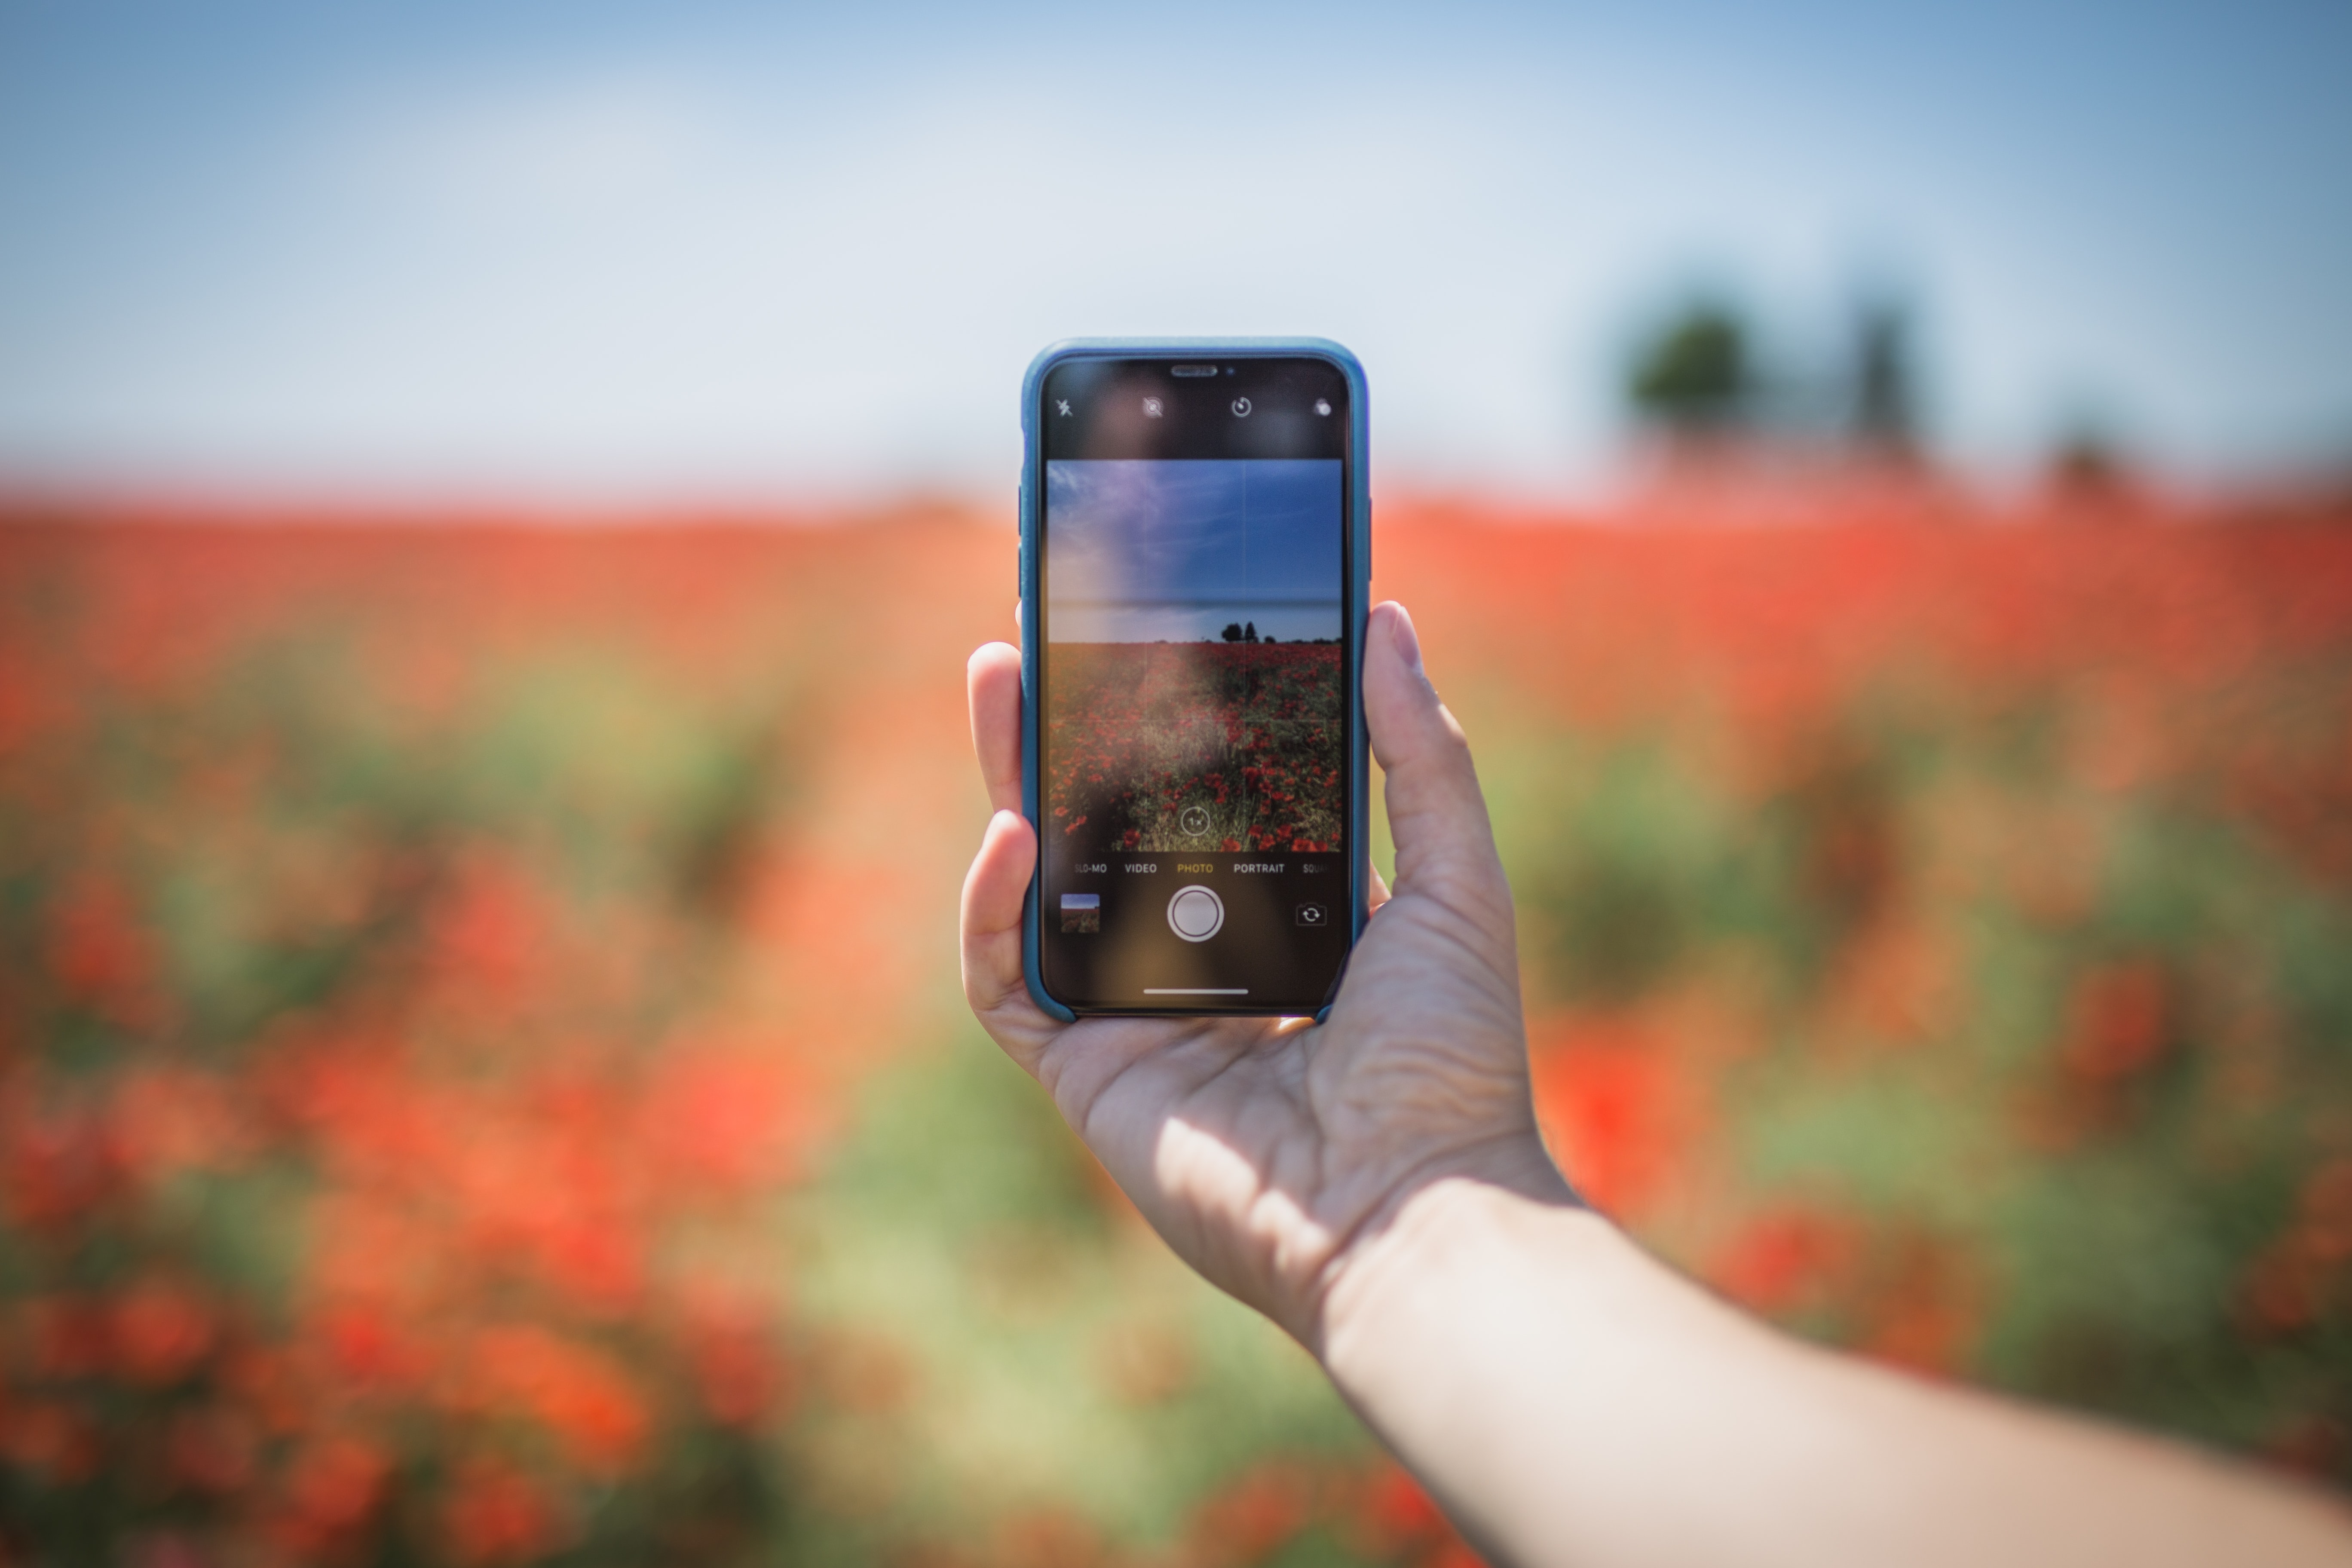 person holding black smartphone taking photo of flower field